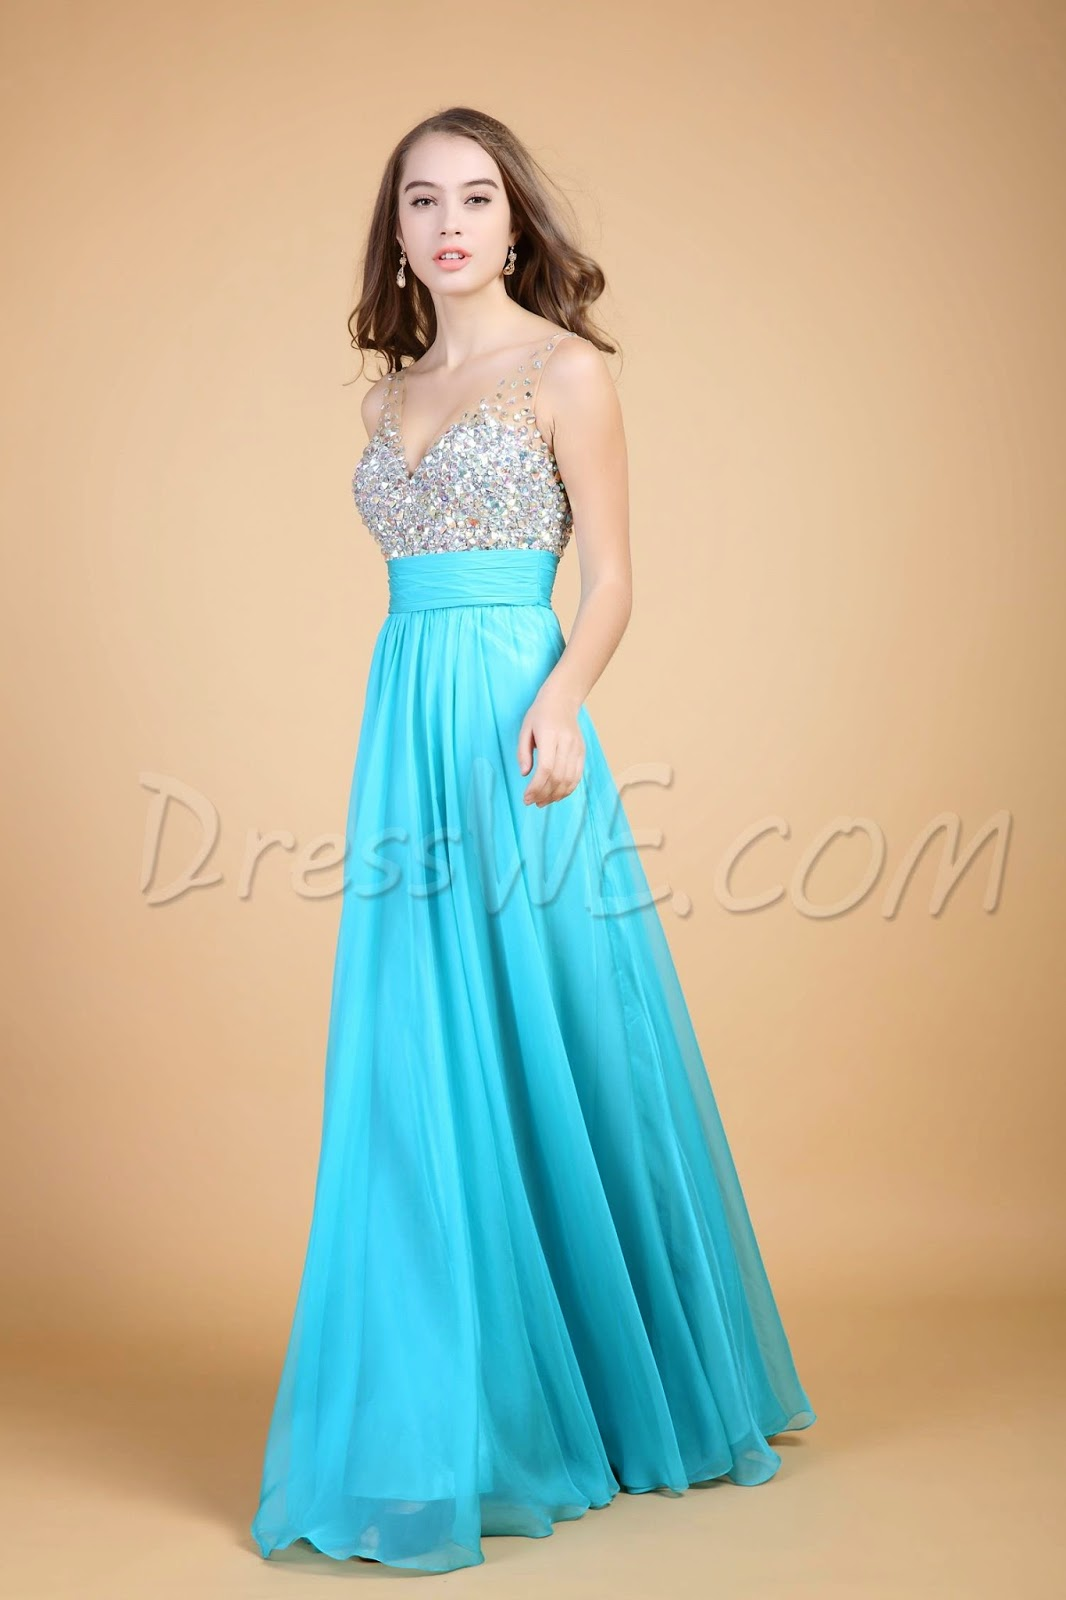 Dresswe elegant prom dresses and boots. | Teen to 30 Stuck in Between